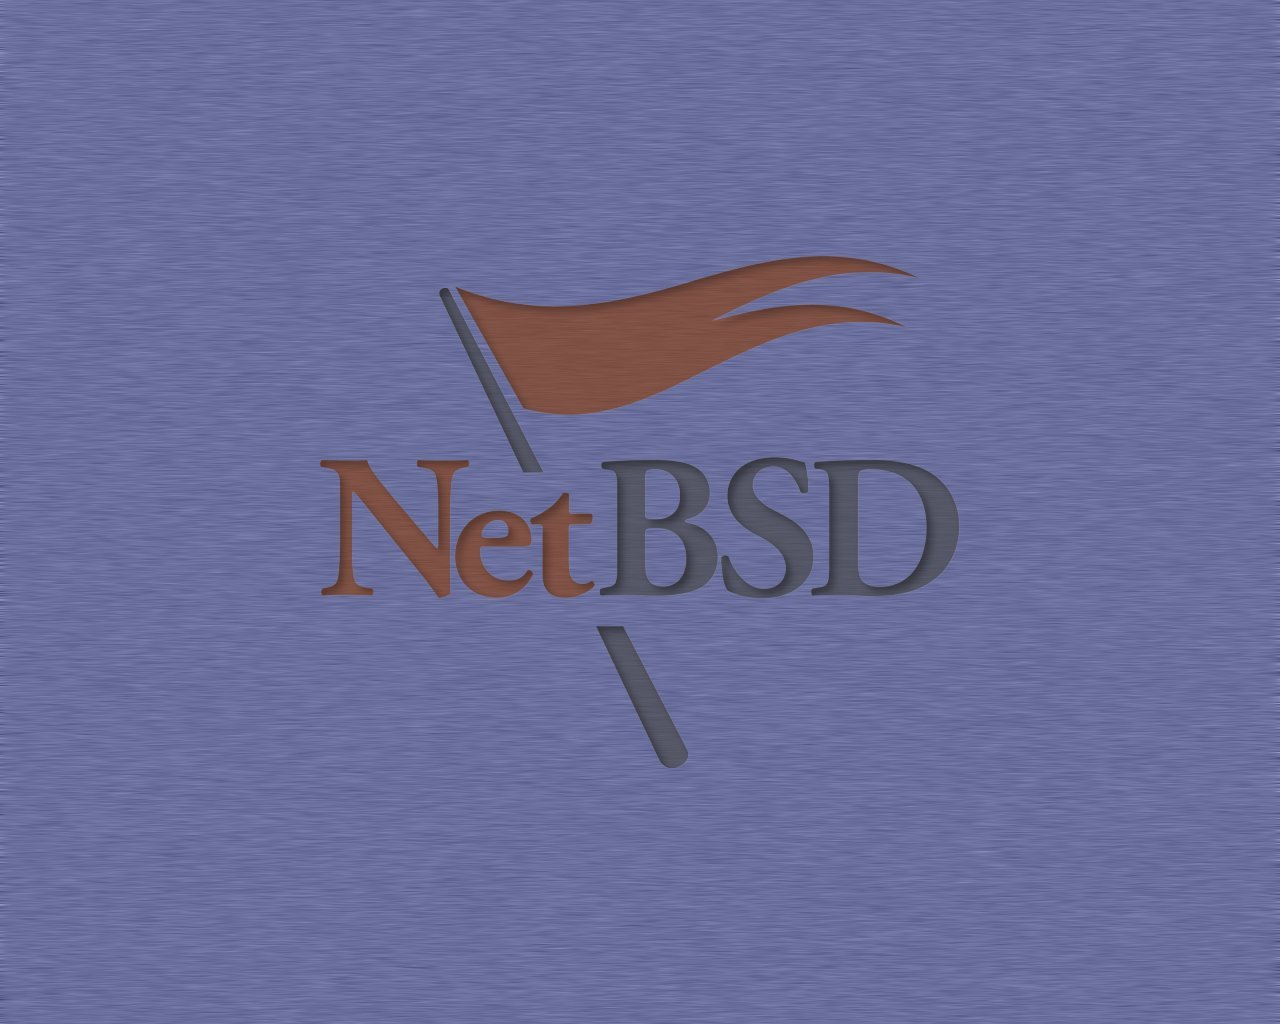 Netbsd Wallpapers Logos For Your Mobile Phone Skins Etc